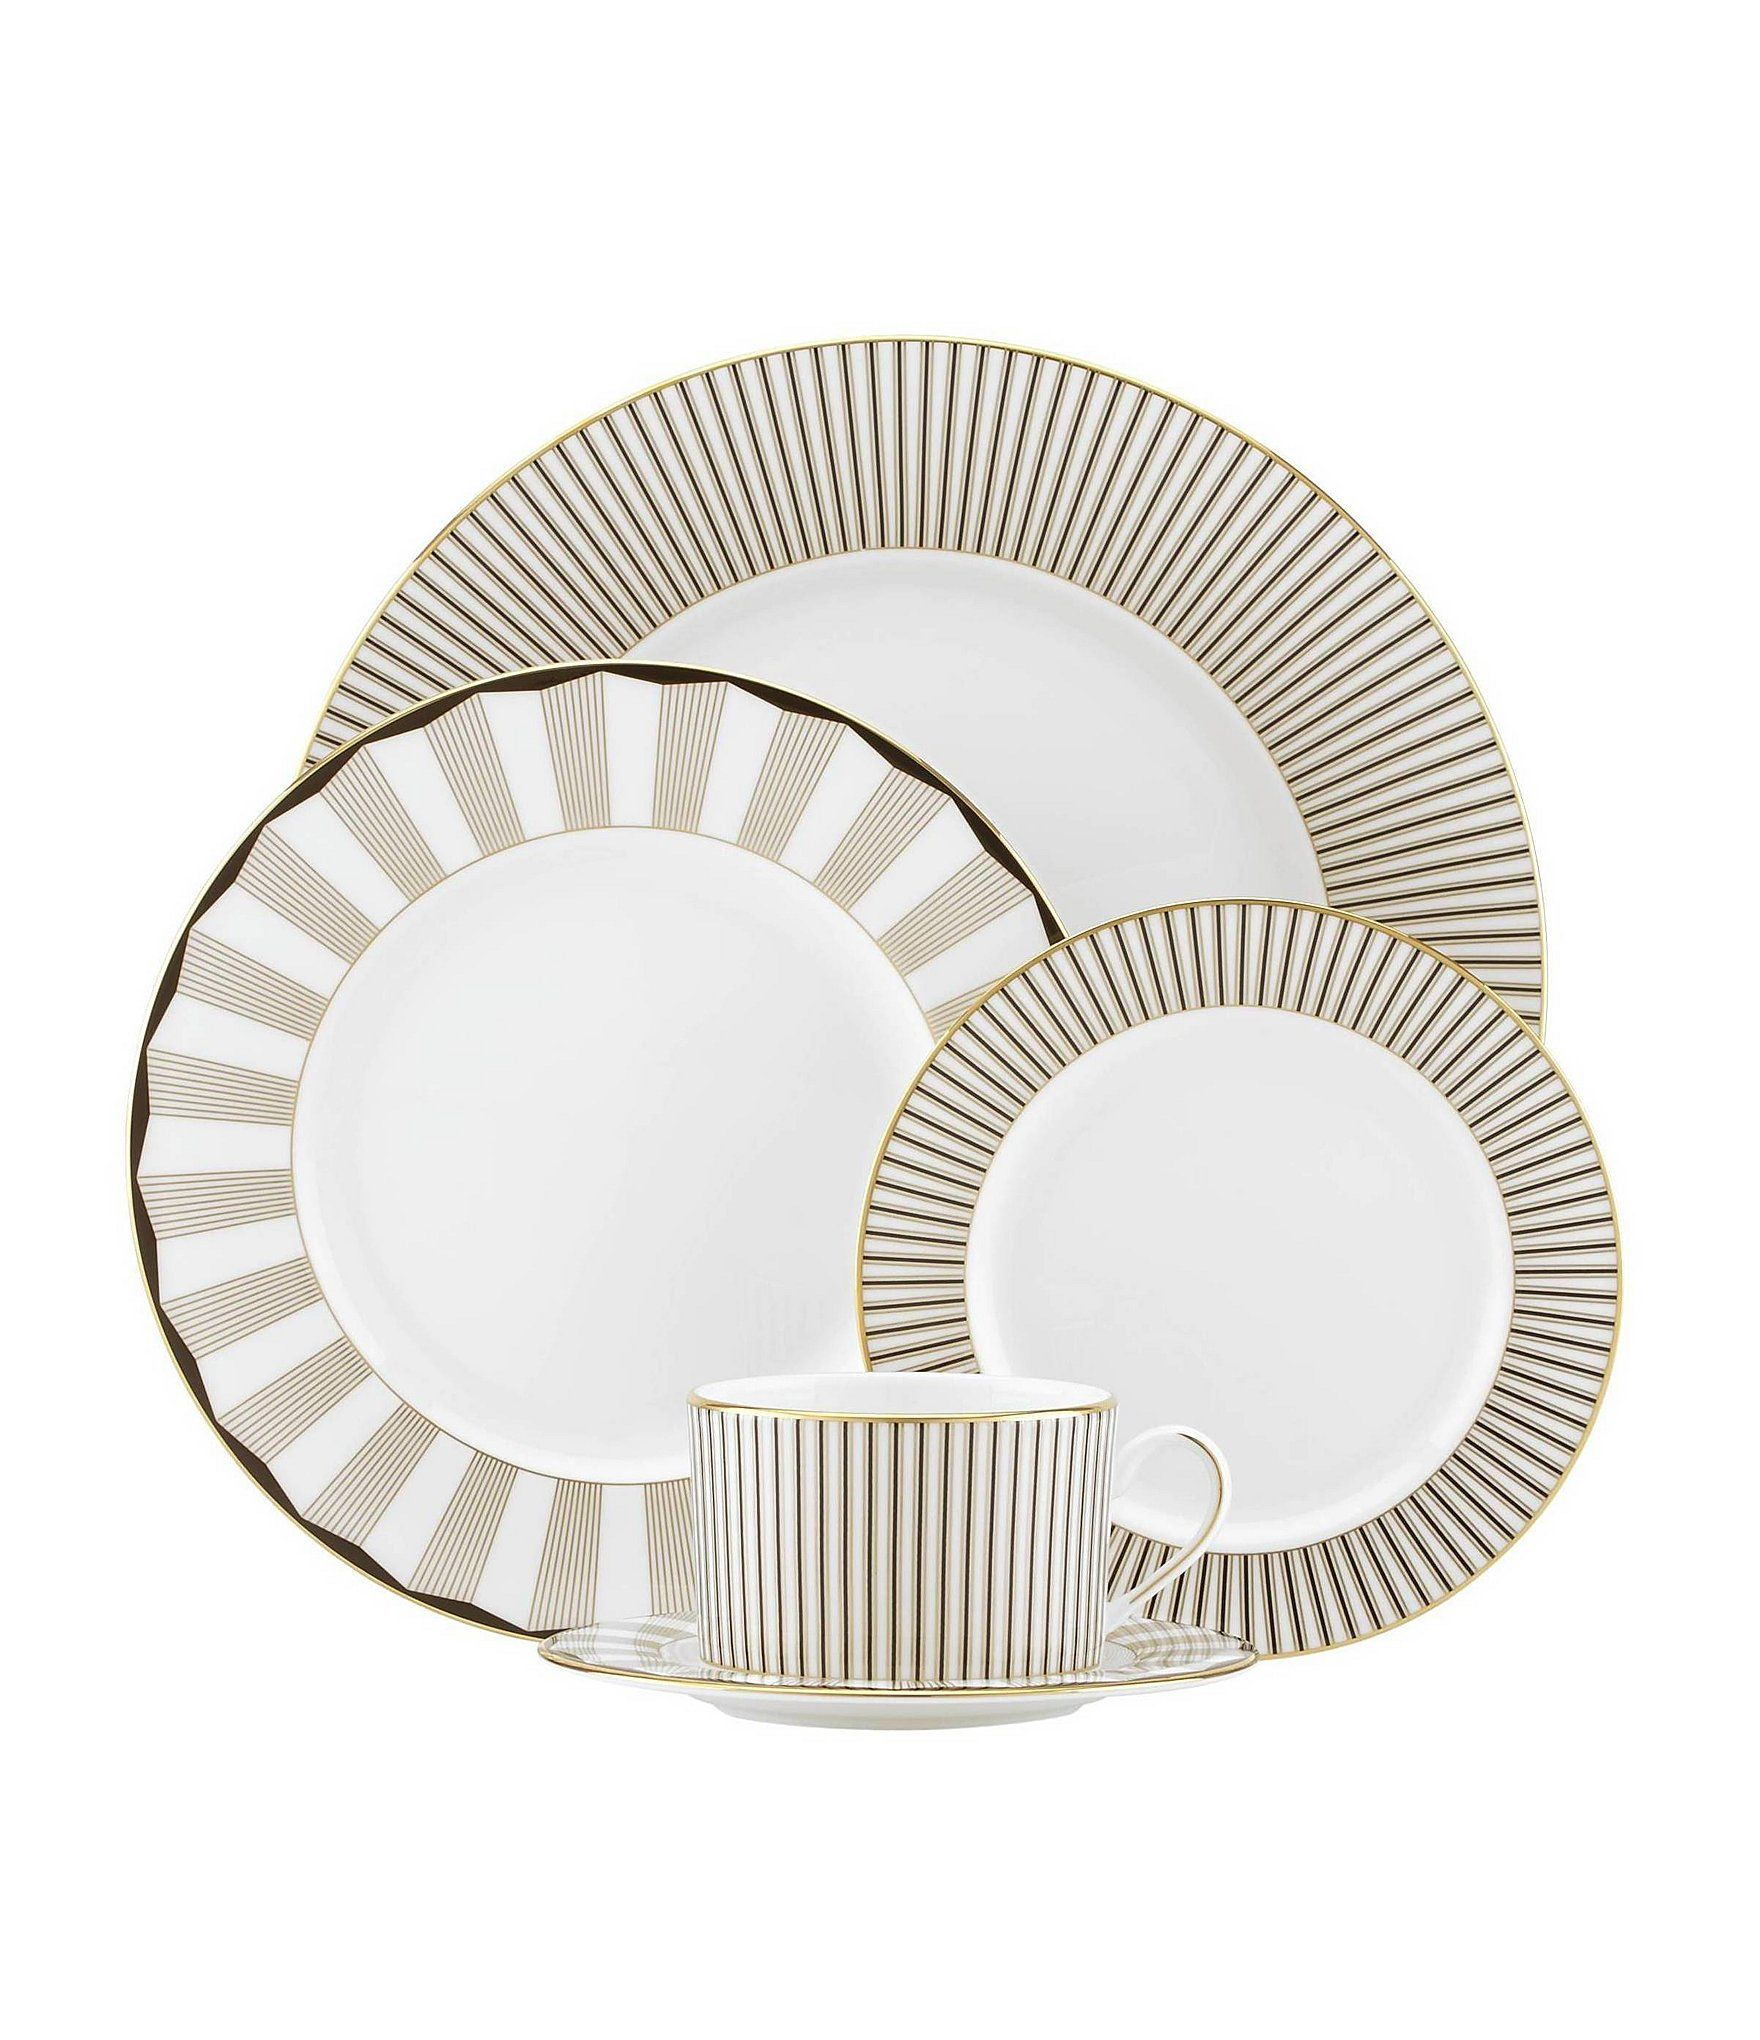 Elegant Tableware For Dining Rooms With Style: Lenox Gluckstein Audrey 5-Piece Place Setting